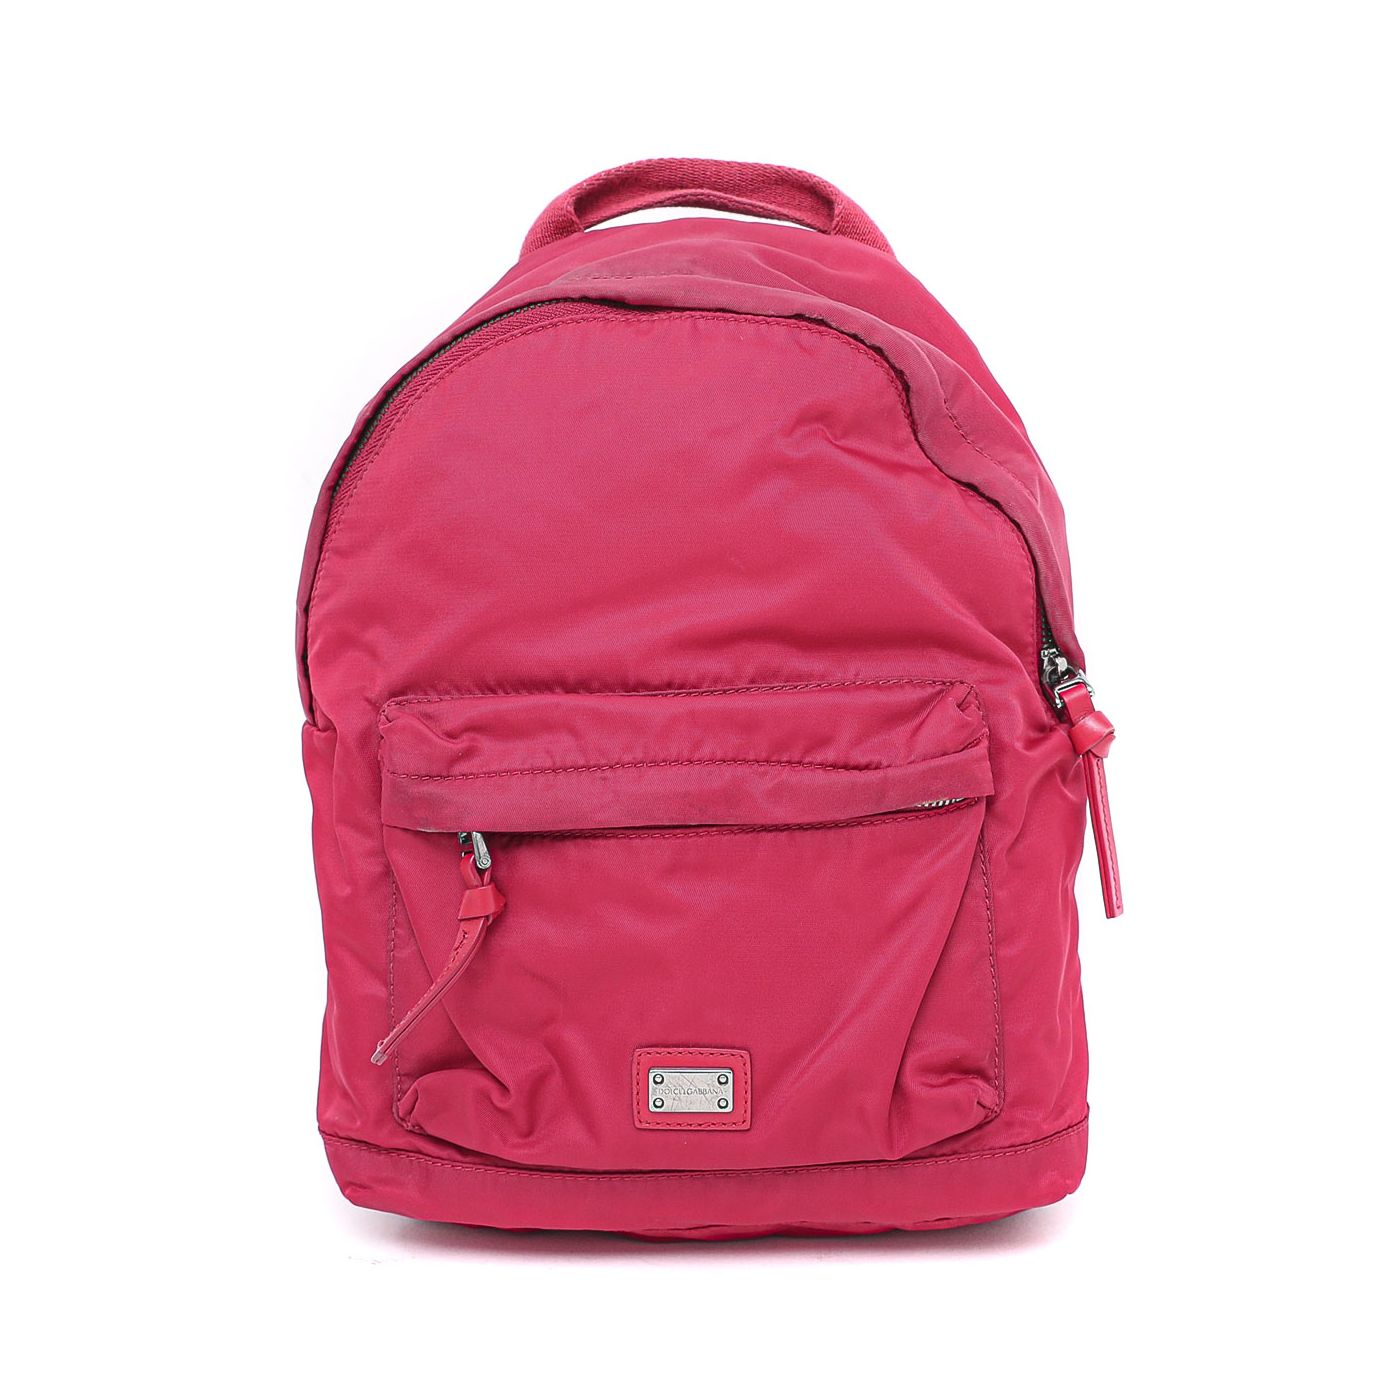 Dolce & Gabbana Red Small Backpack